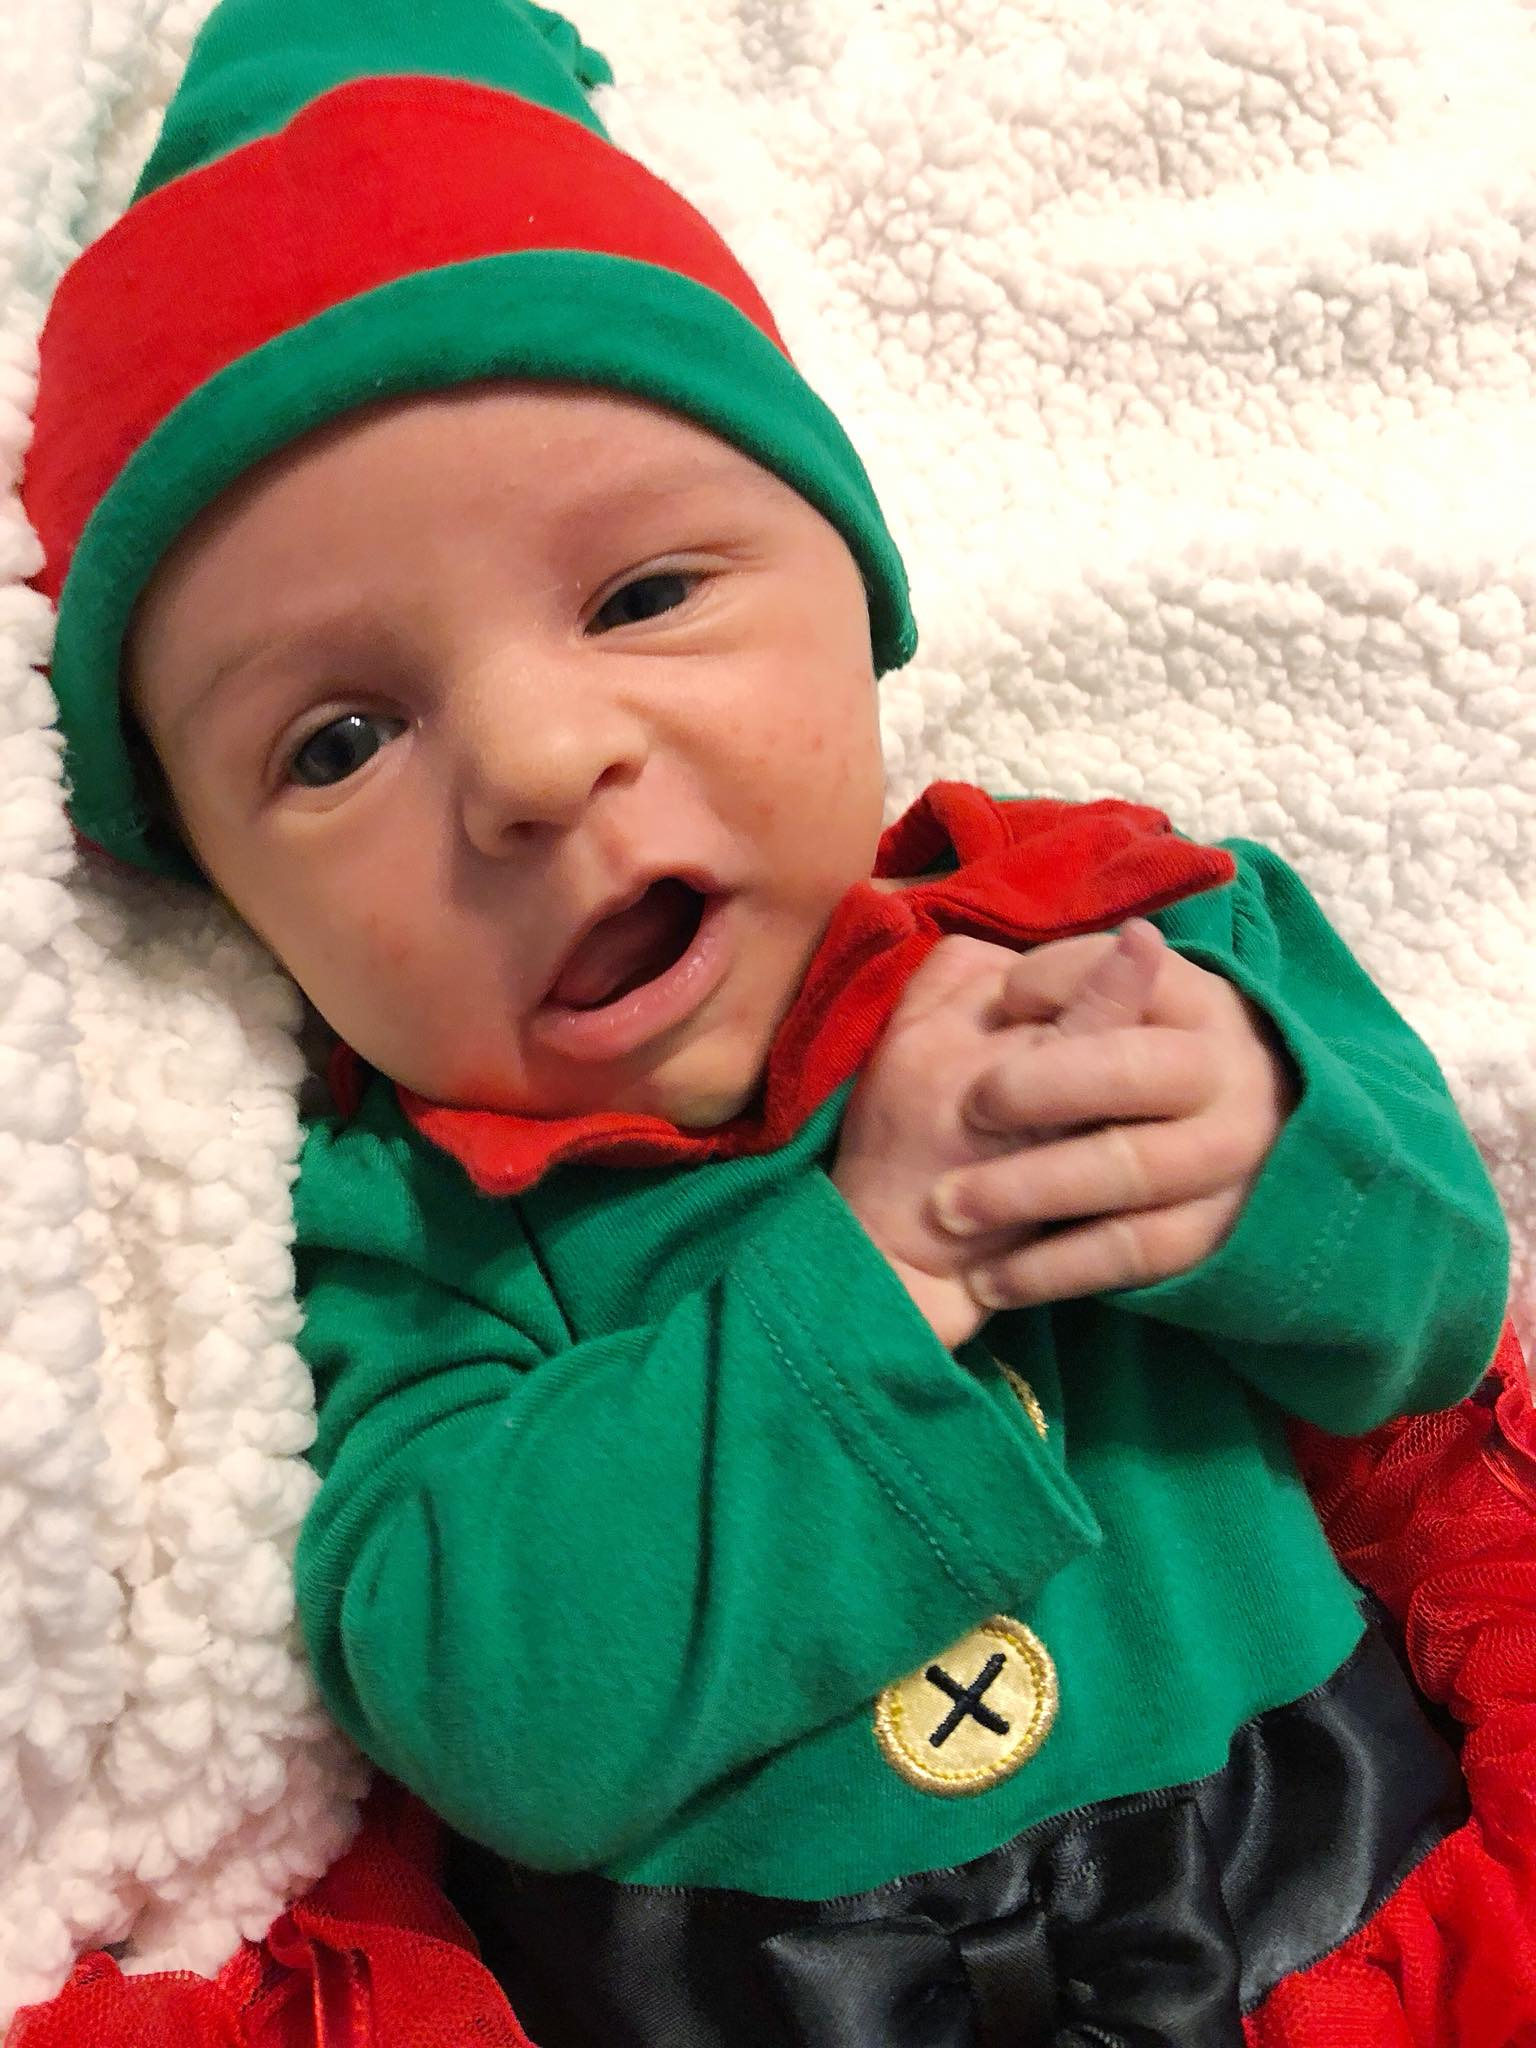 Baby Amélie the Elf